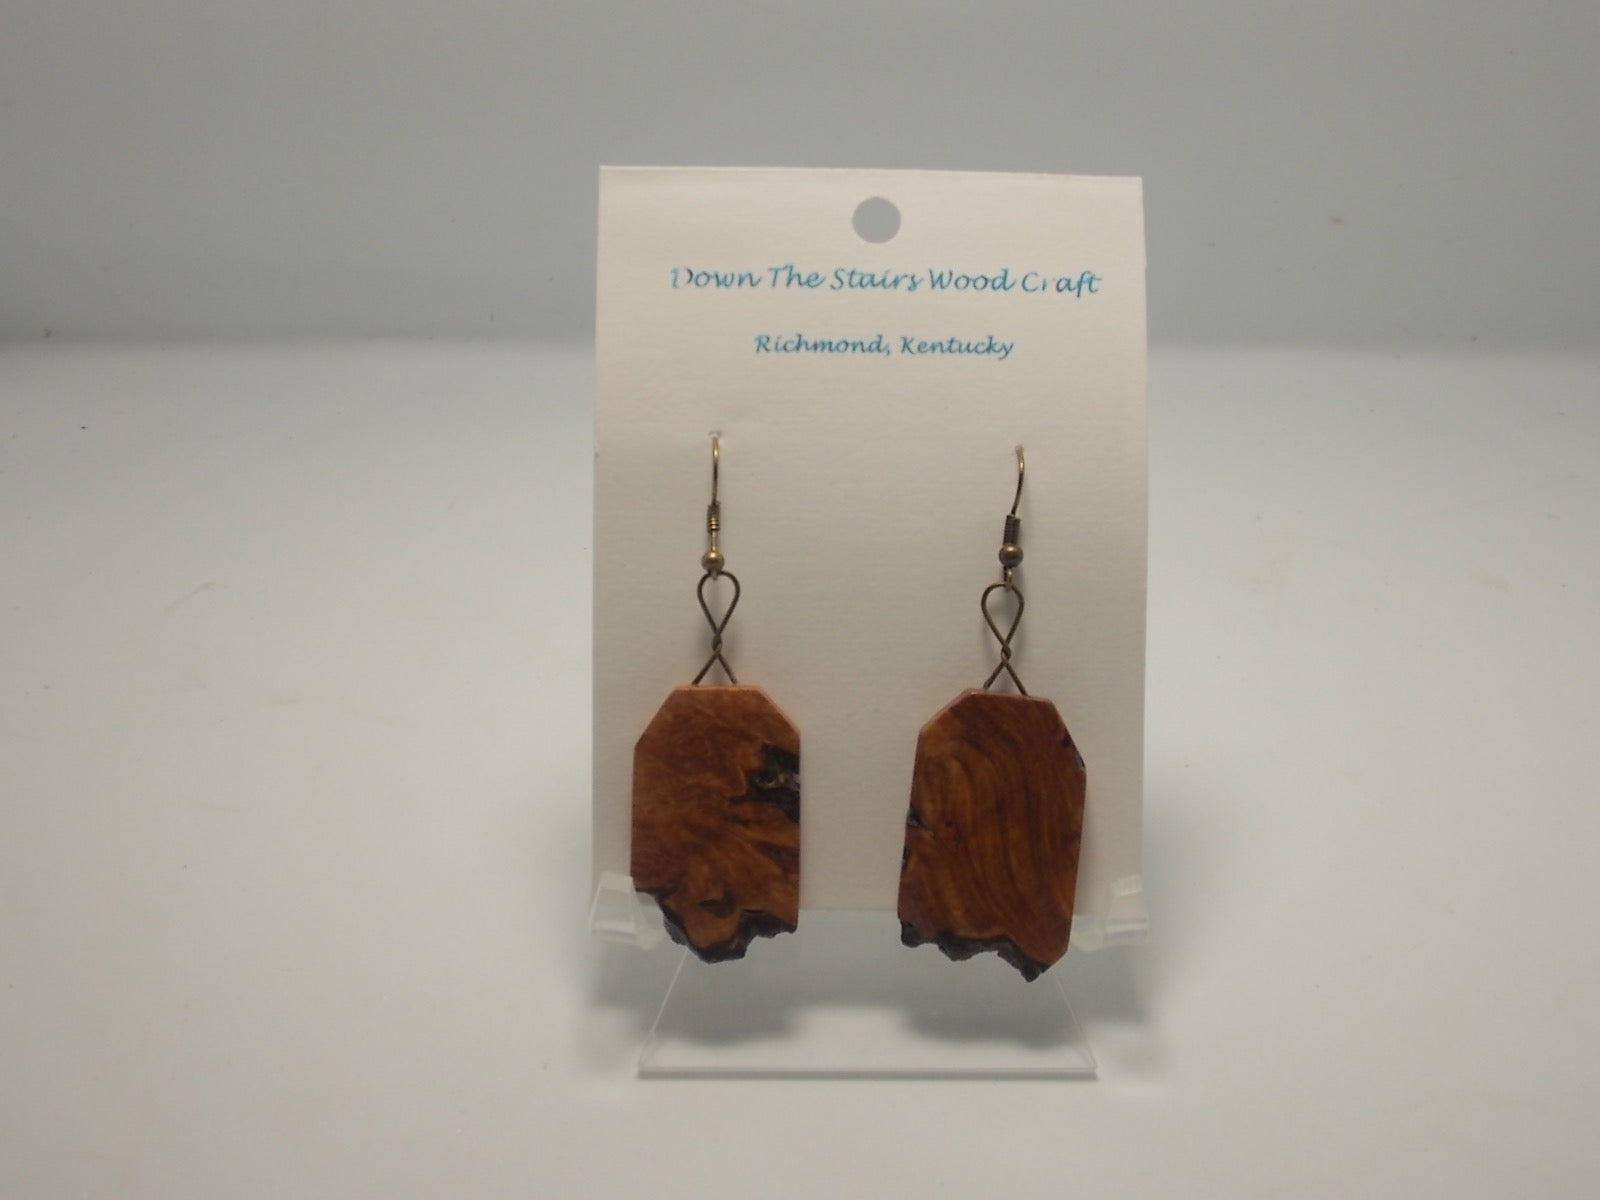 Wooden Earrings by David Russell